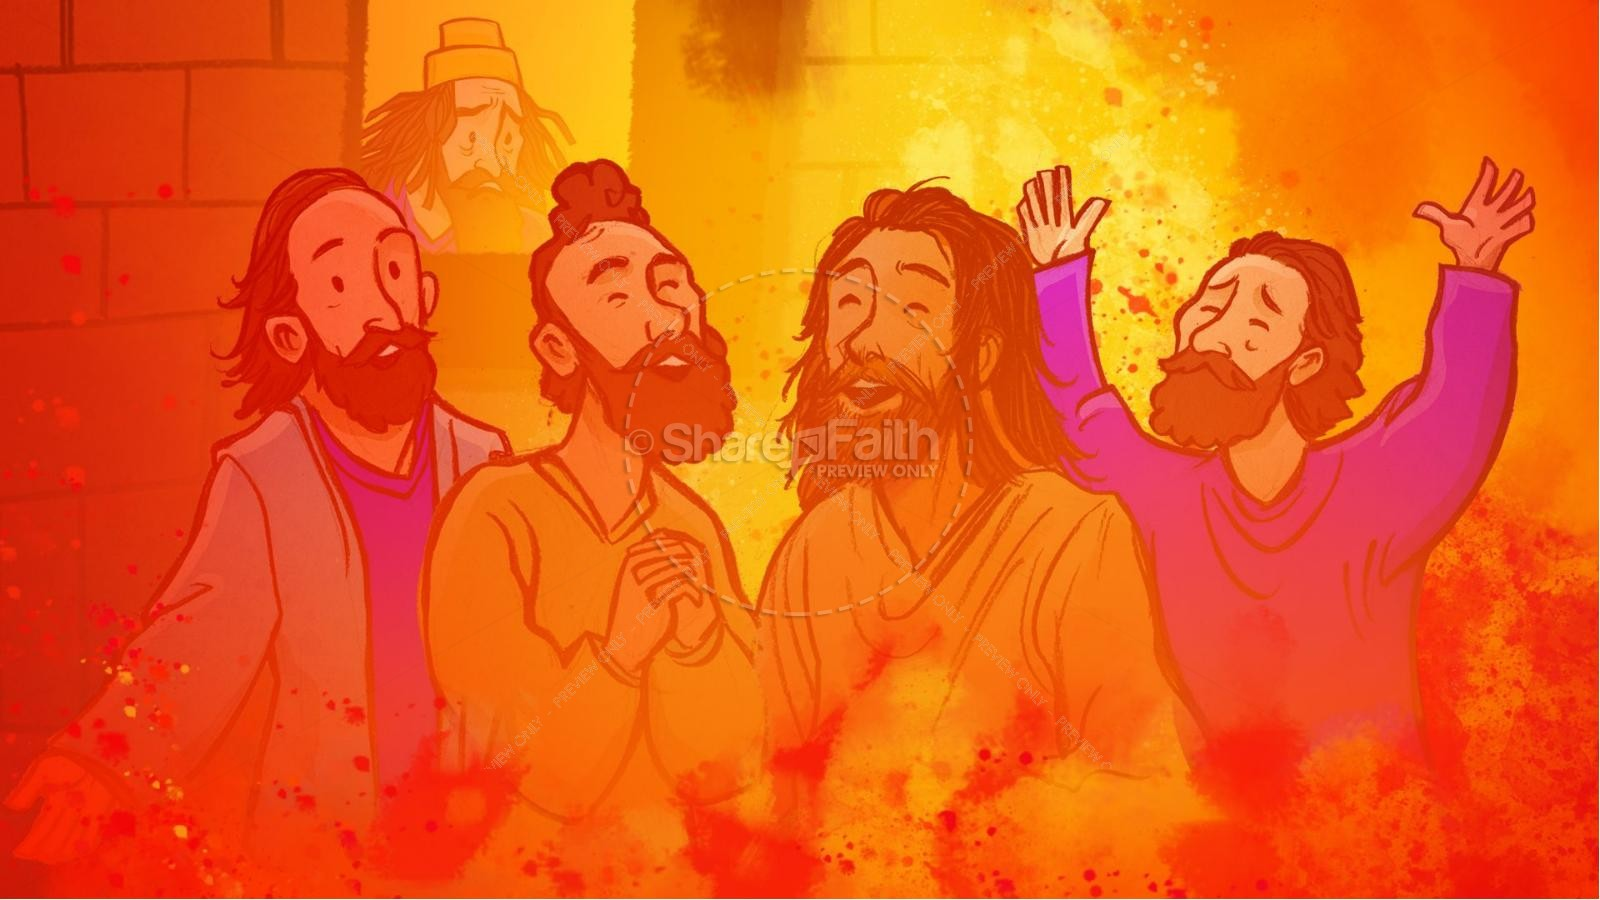 The Fiery Furnace with Shadrach, Meshach and Abednego Kids Bible Story | slide 12